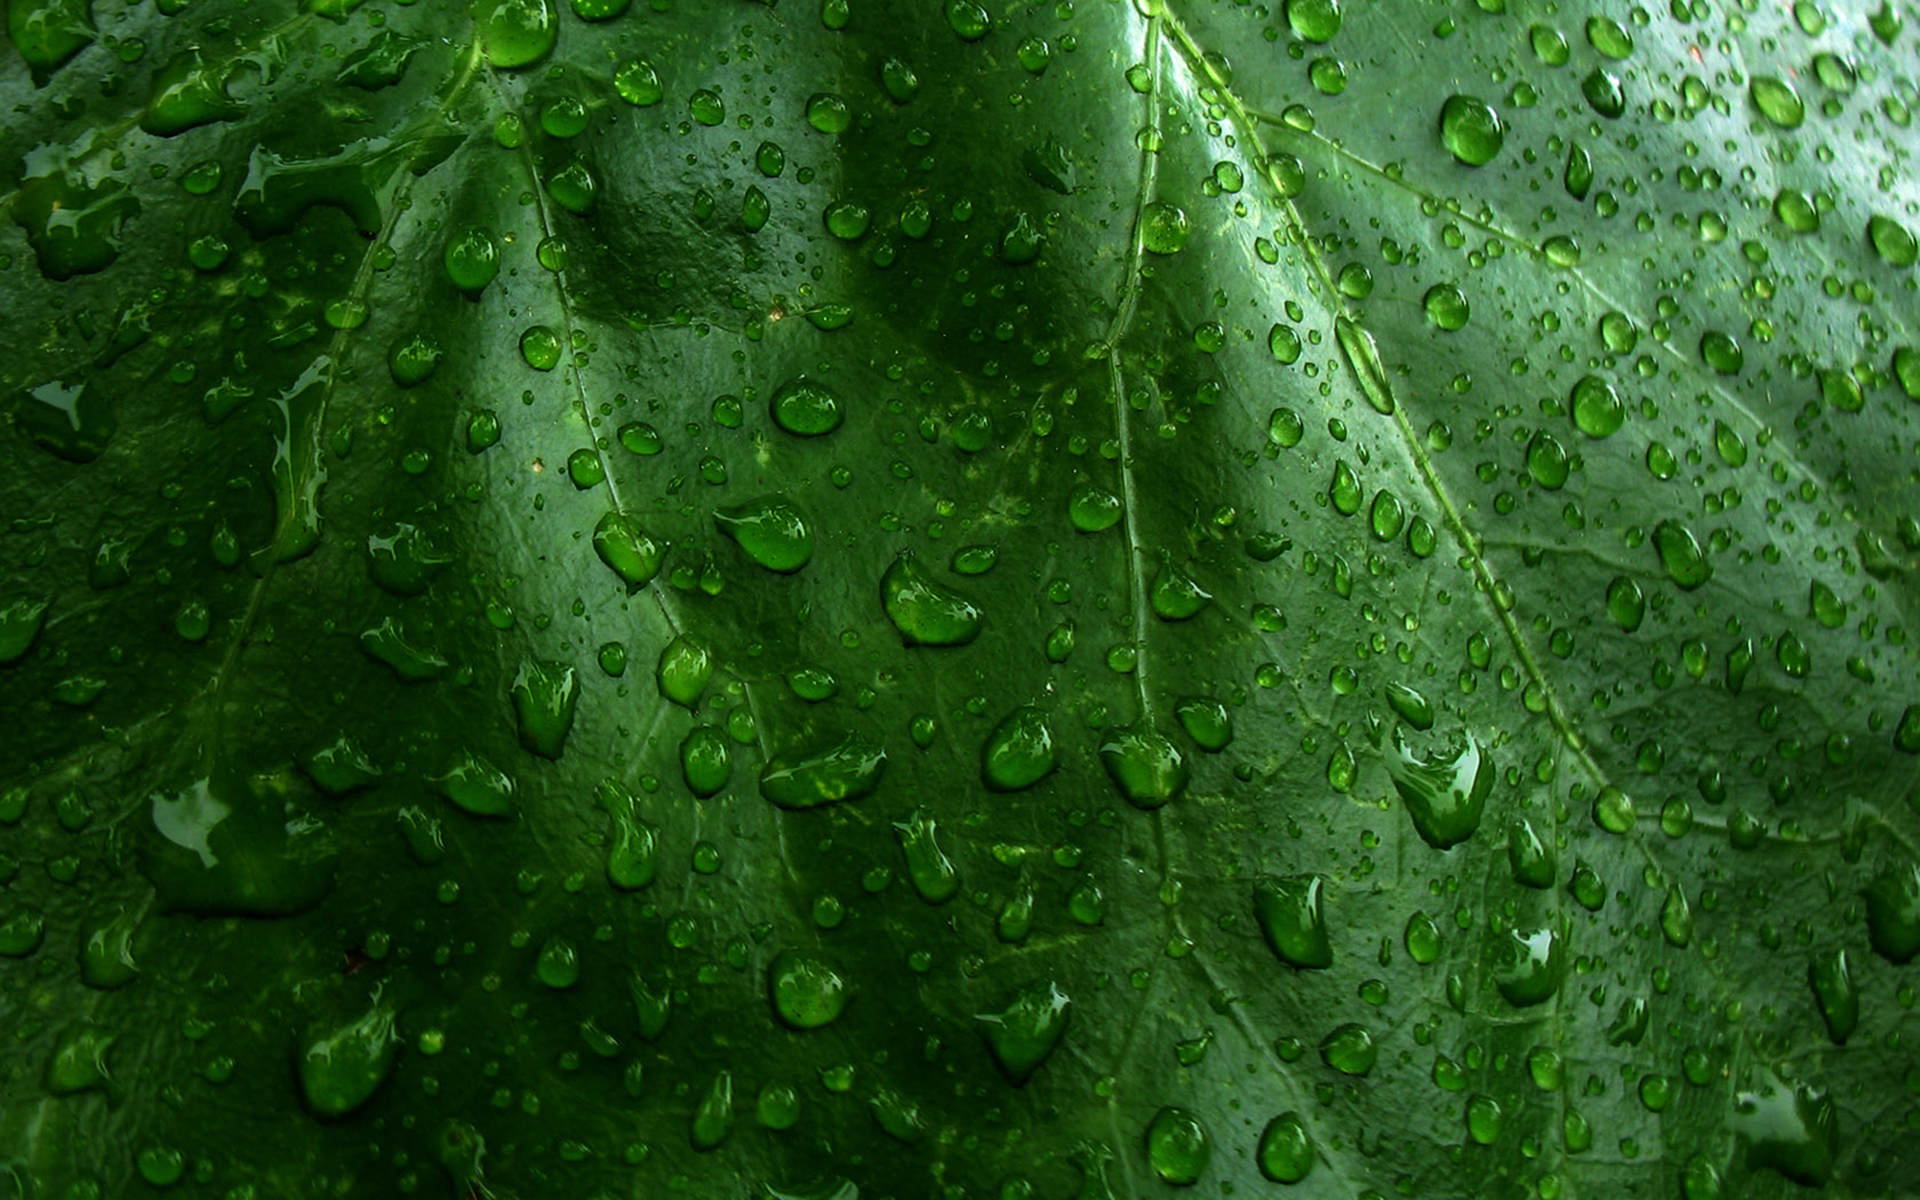 Earth - Water Drop  Green Leaf Raindrops Ribs Plant Wallpaper